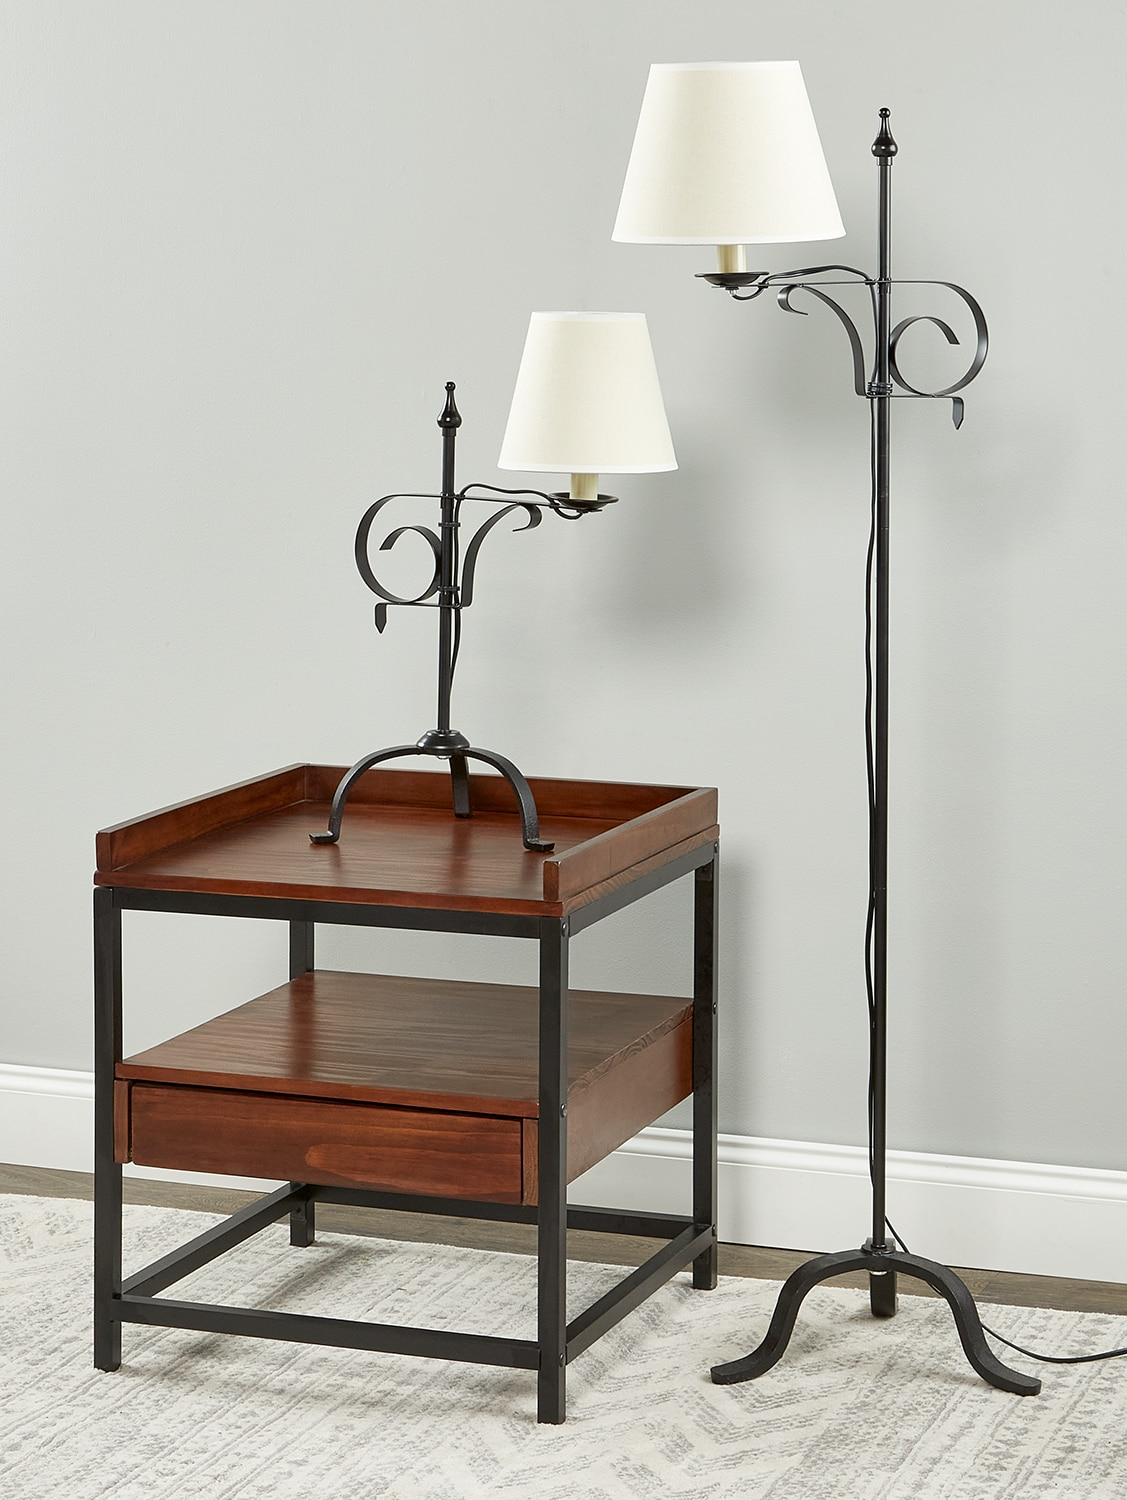 Wrought iron adjustable table and floor lamps